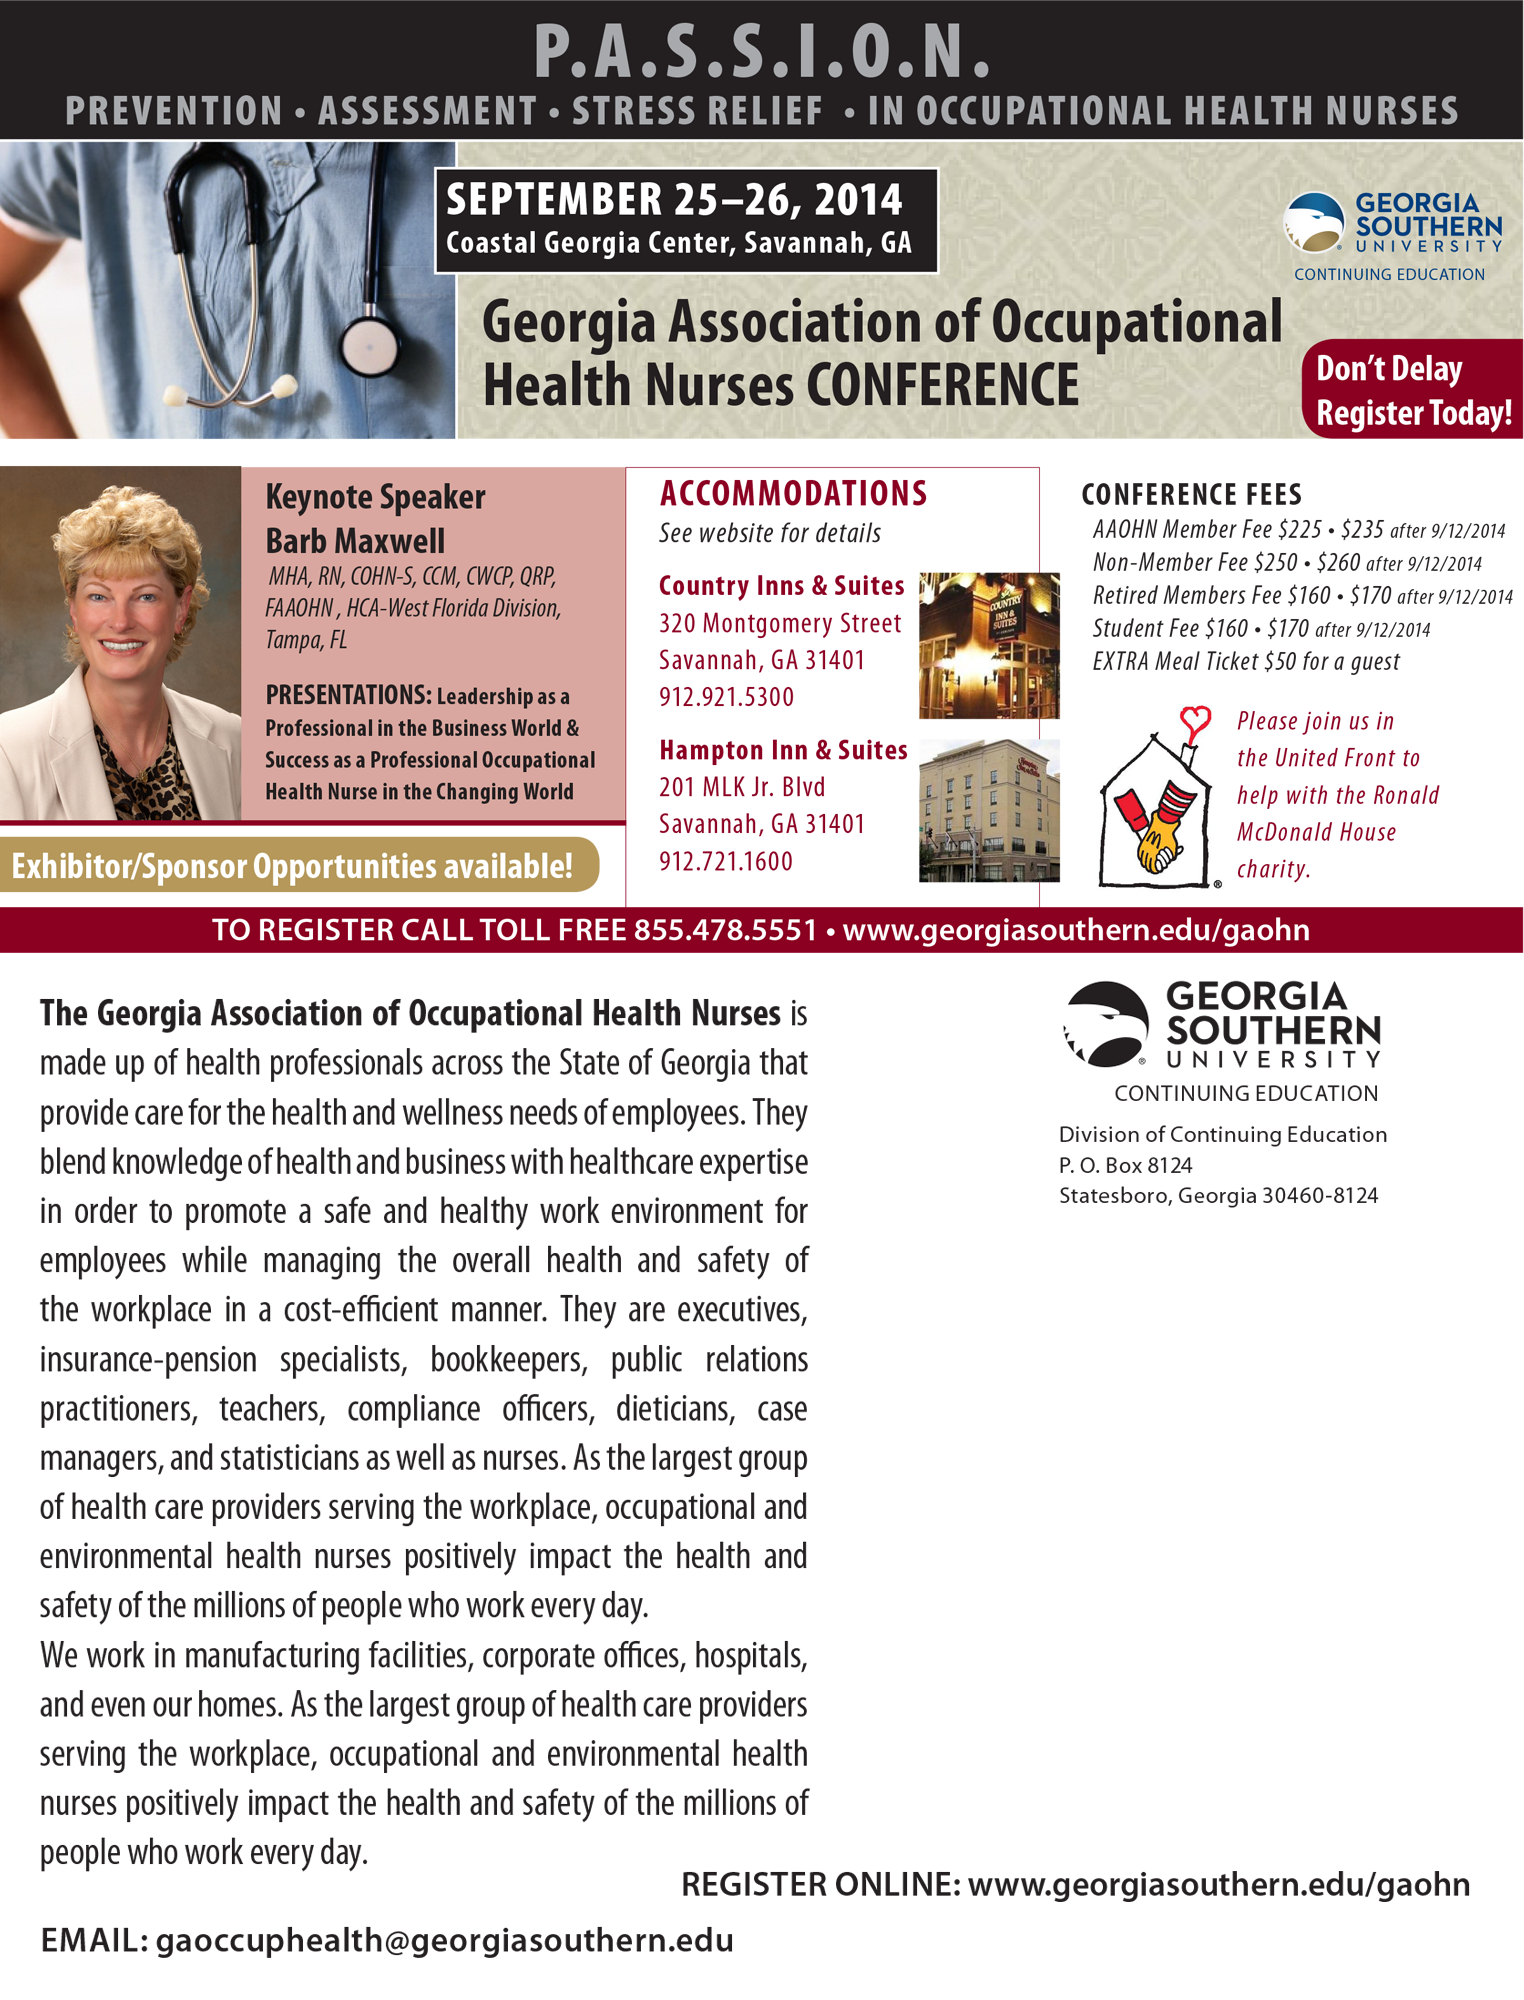 Georgia Association of Occupational Health Nurses Conference